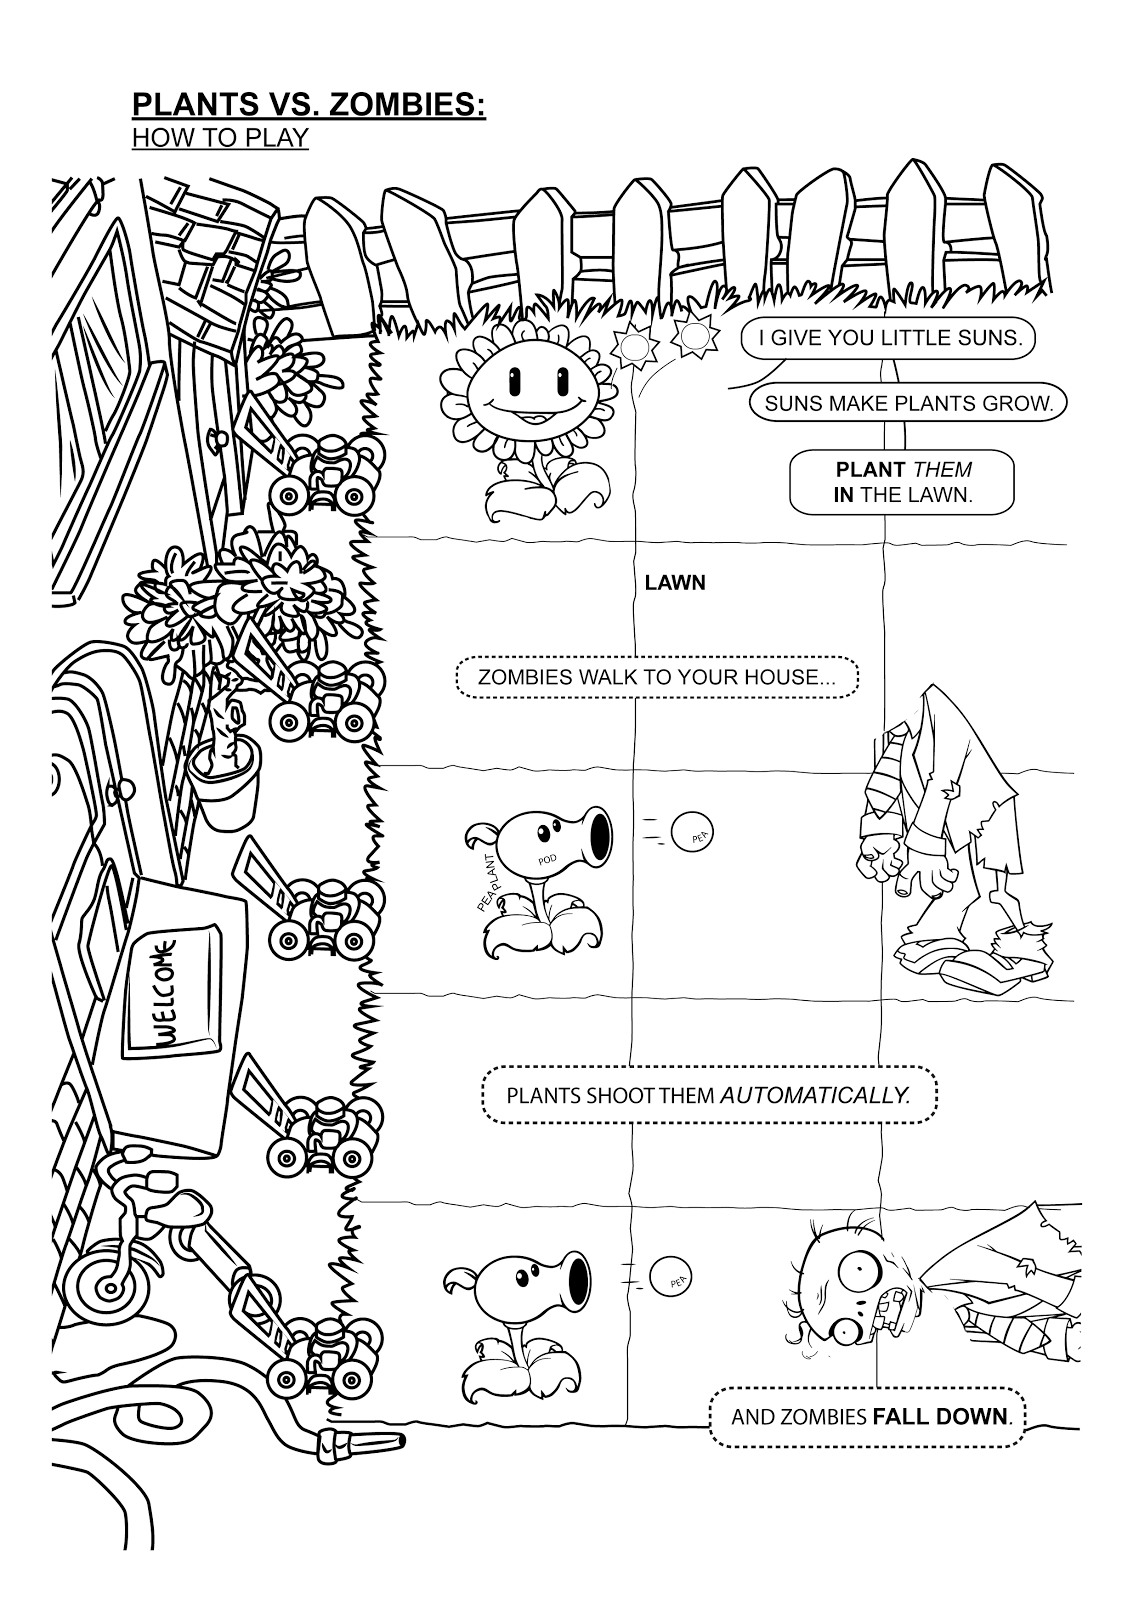 How to Play Plants vs Zombies Coloring Page